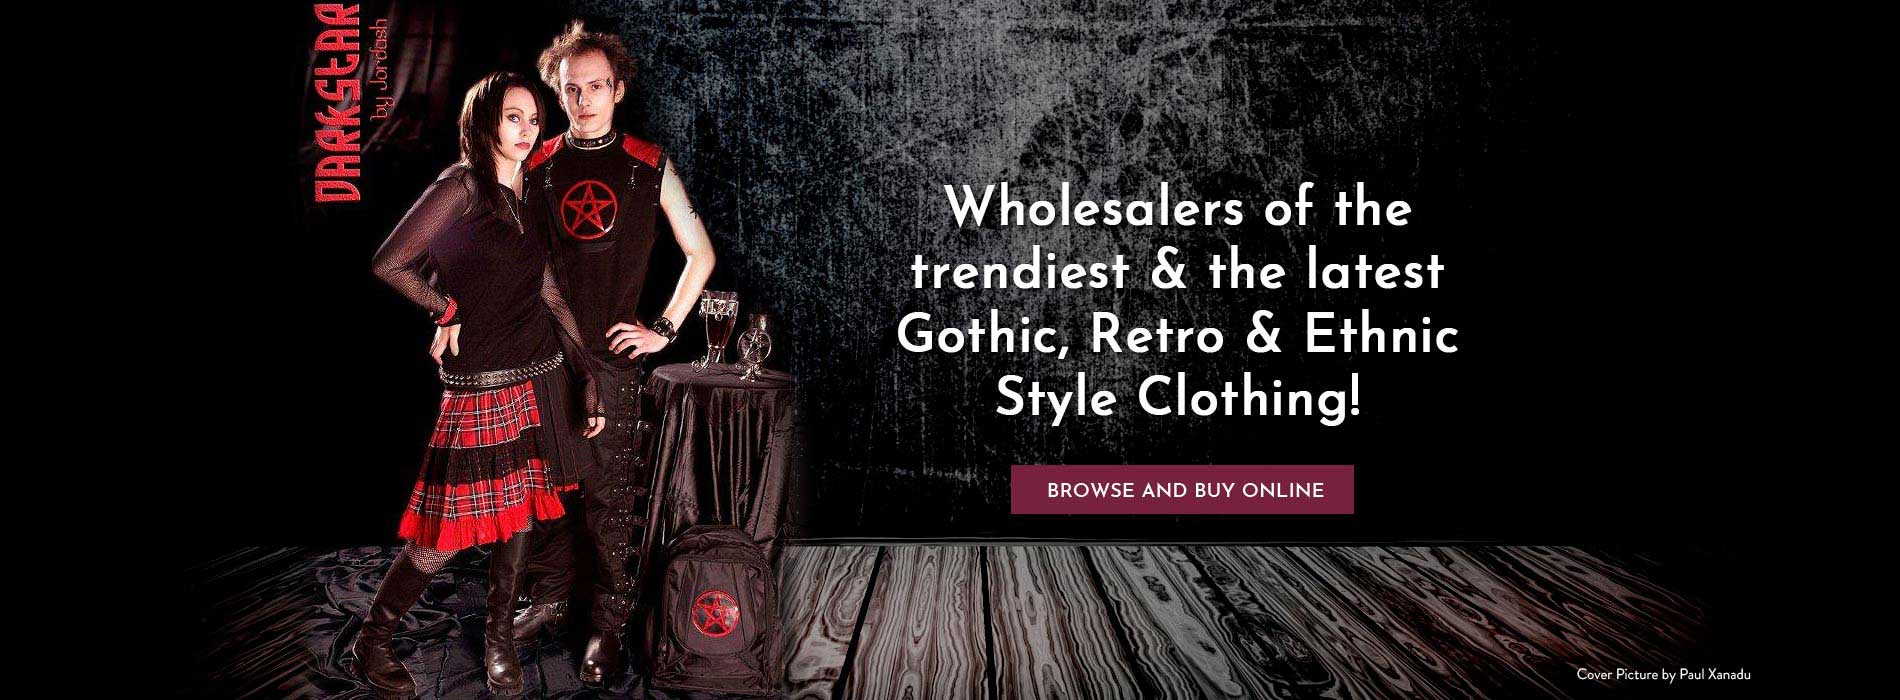 Wholesale Dark Star Clothing Supplier by Jordash Clothing